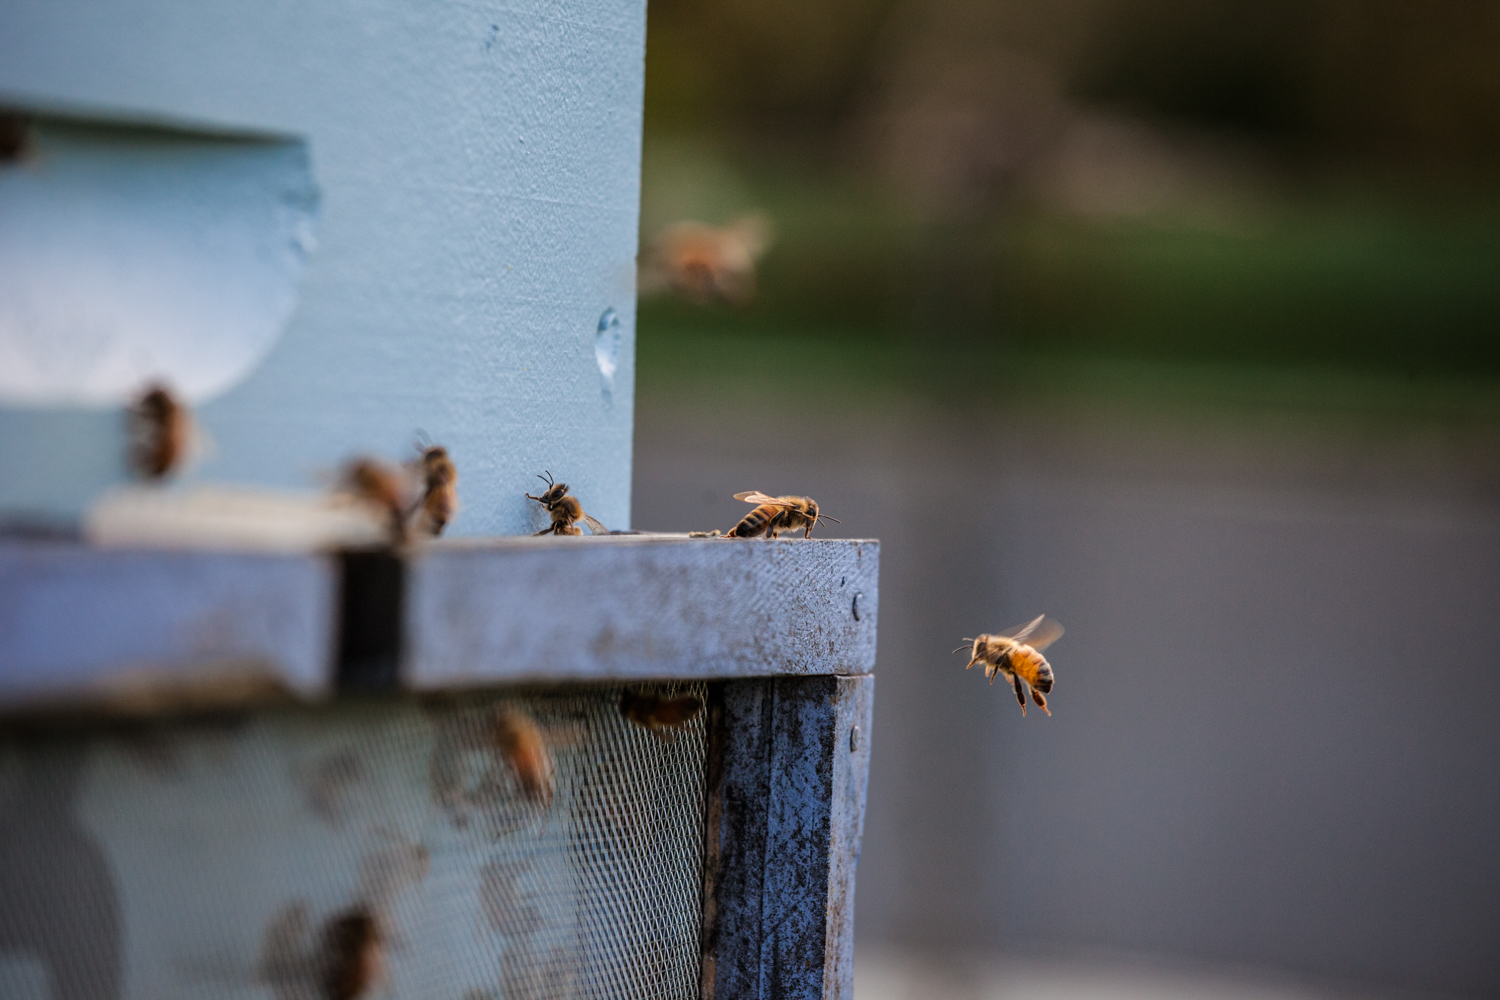 Introducing BuzzTech, the New Zealand company that is helping beekeepers go digital.